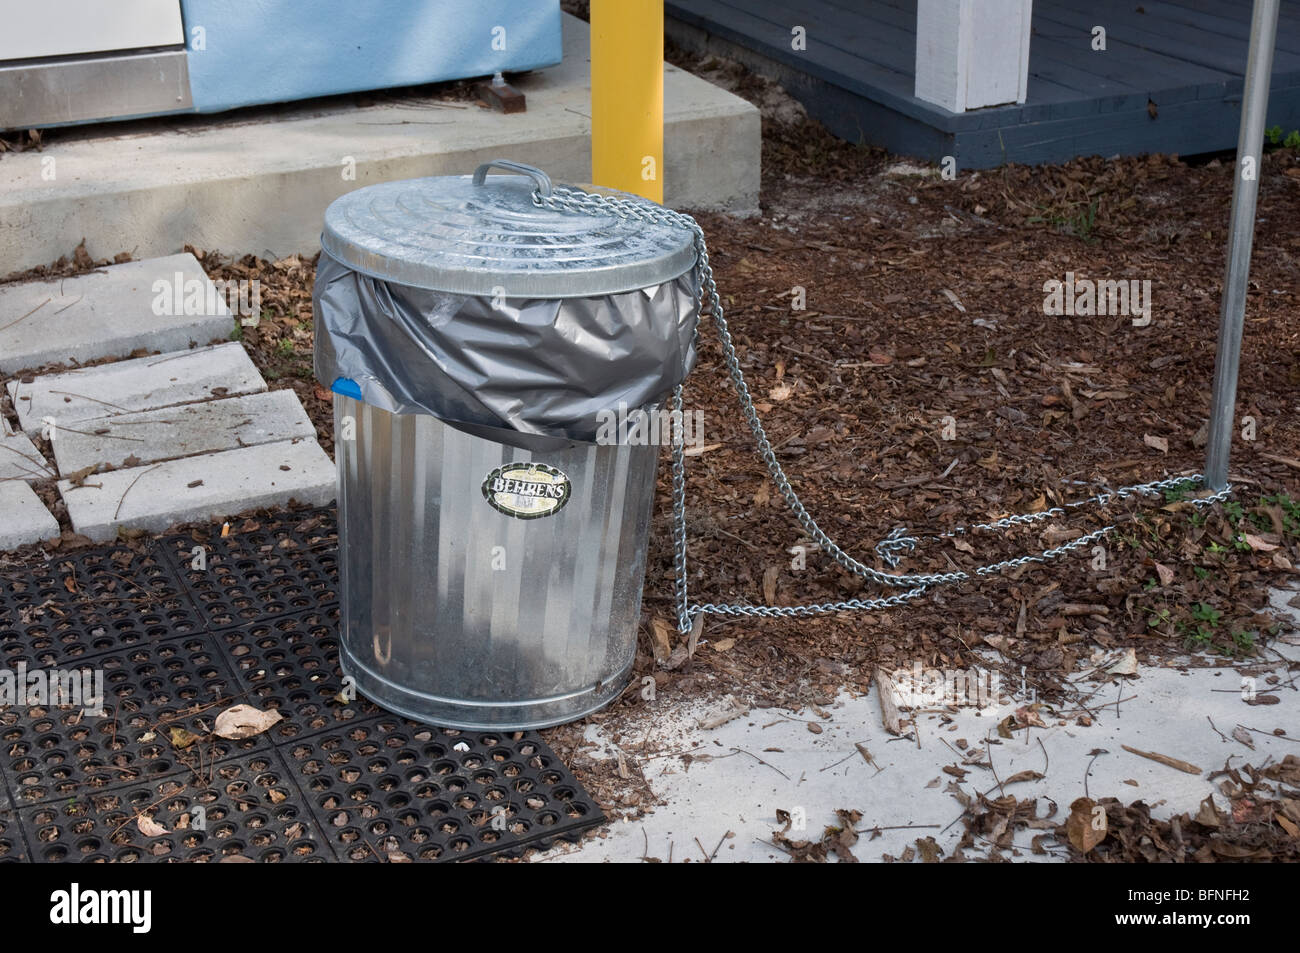 garbage can chained as anti-theft deterrant at outdoor location, North Florida - Stock Image